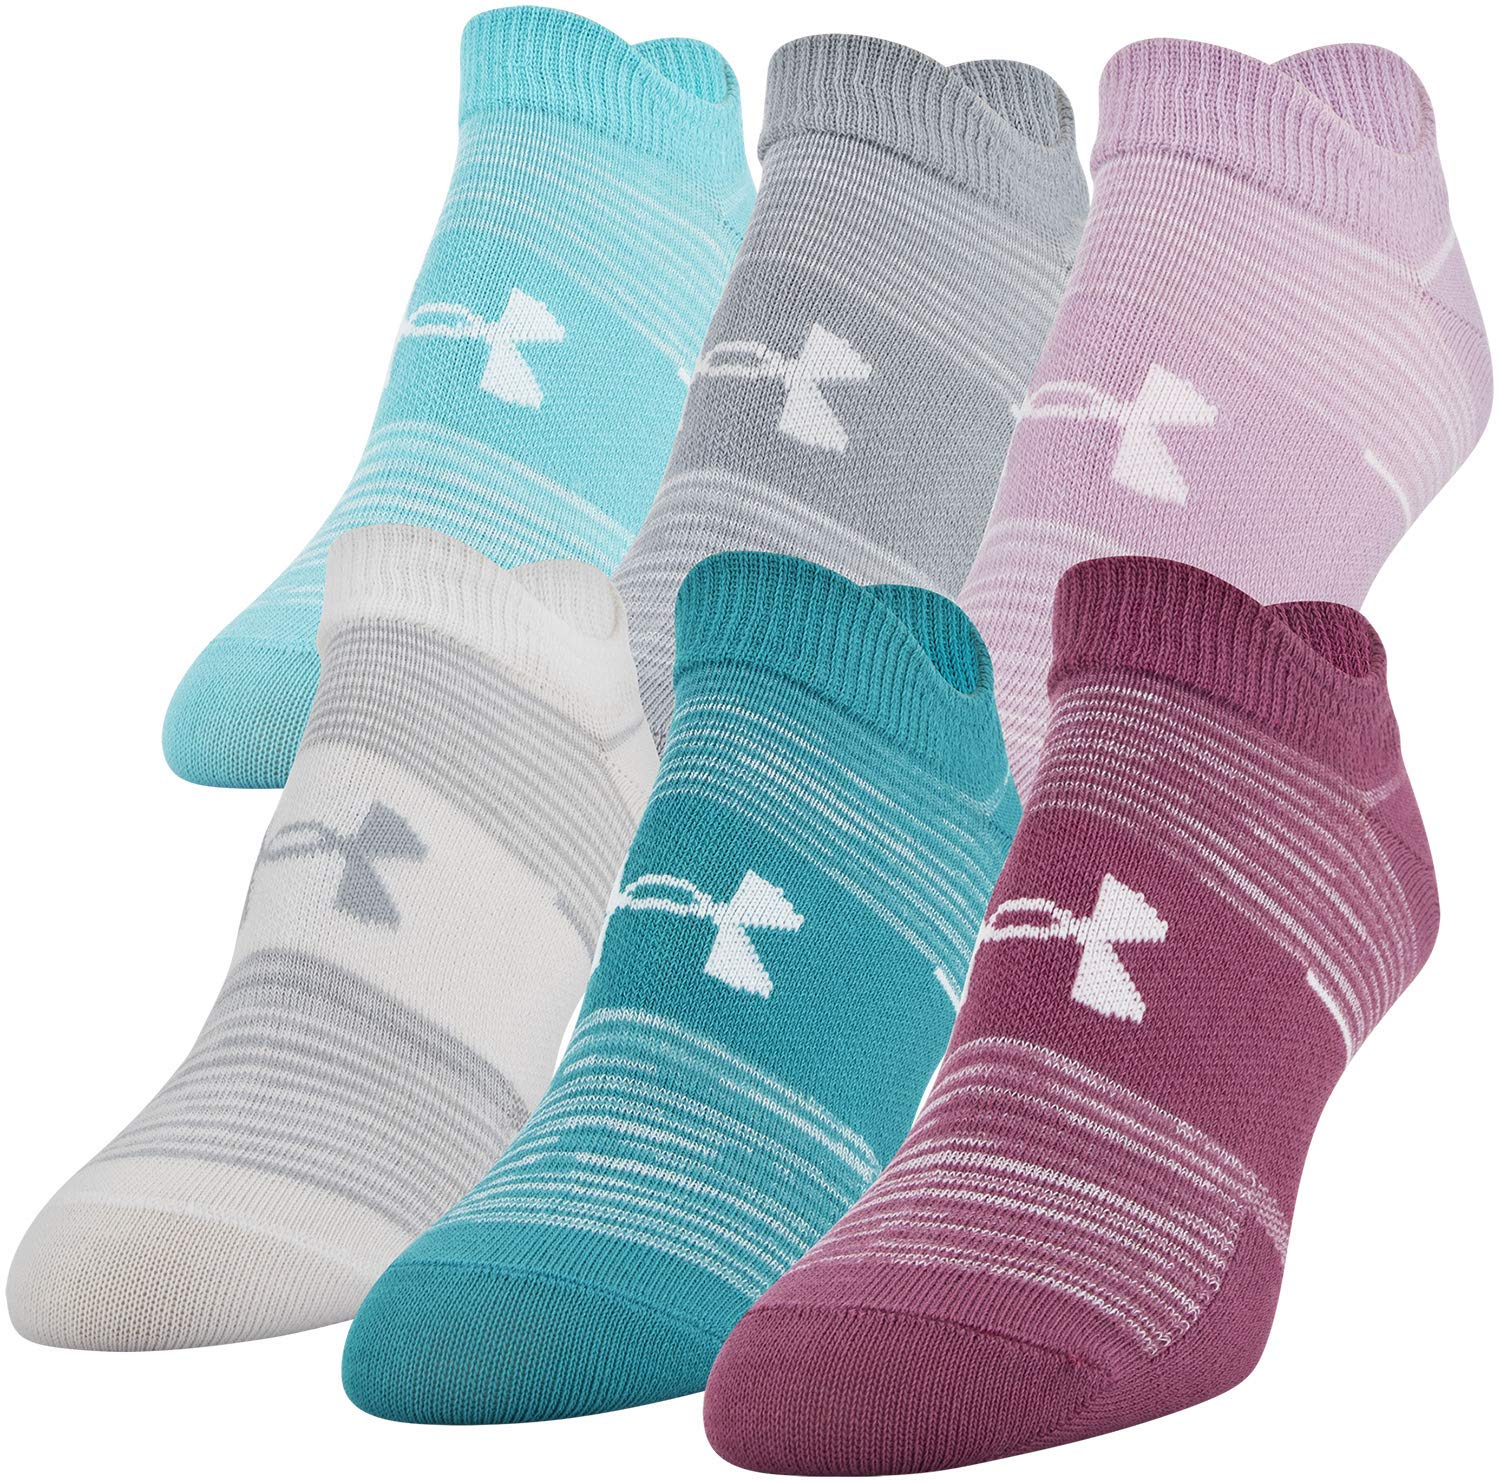 Under Armour Essential No Show Socks, 6-Pair, Pink Quartz Stripe Assorted, Shoe Size: Womens 6-9 by Under Armour